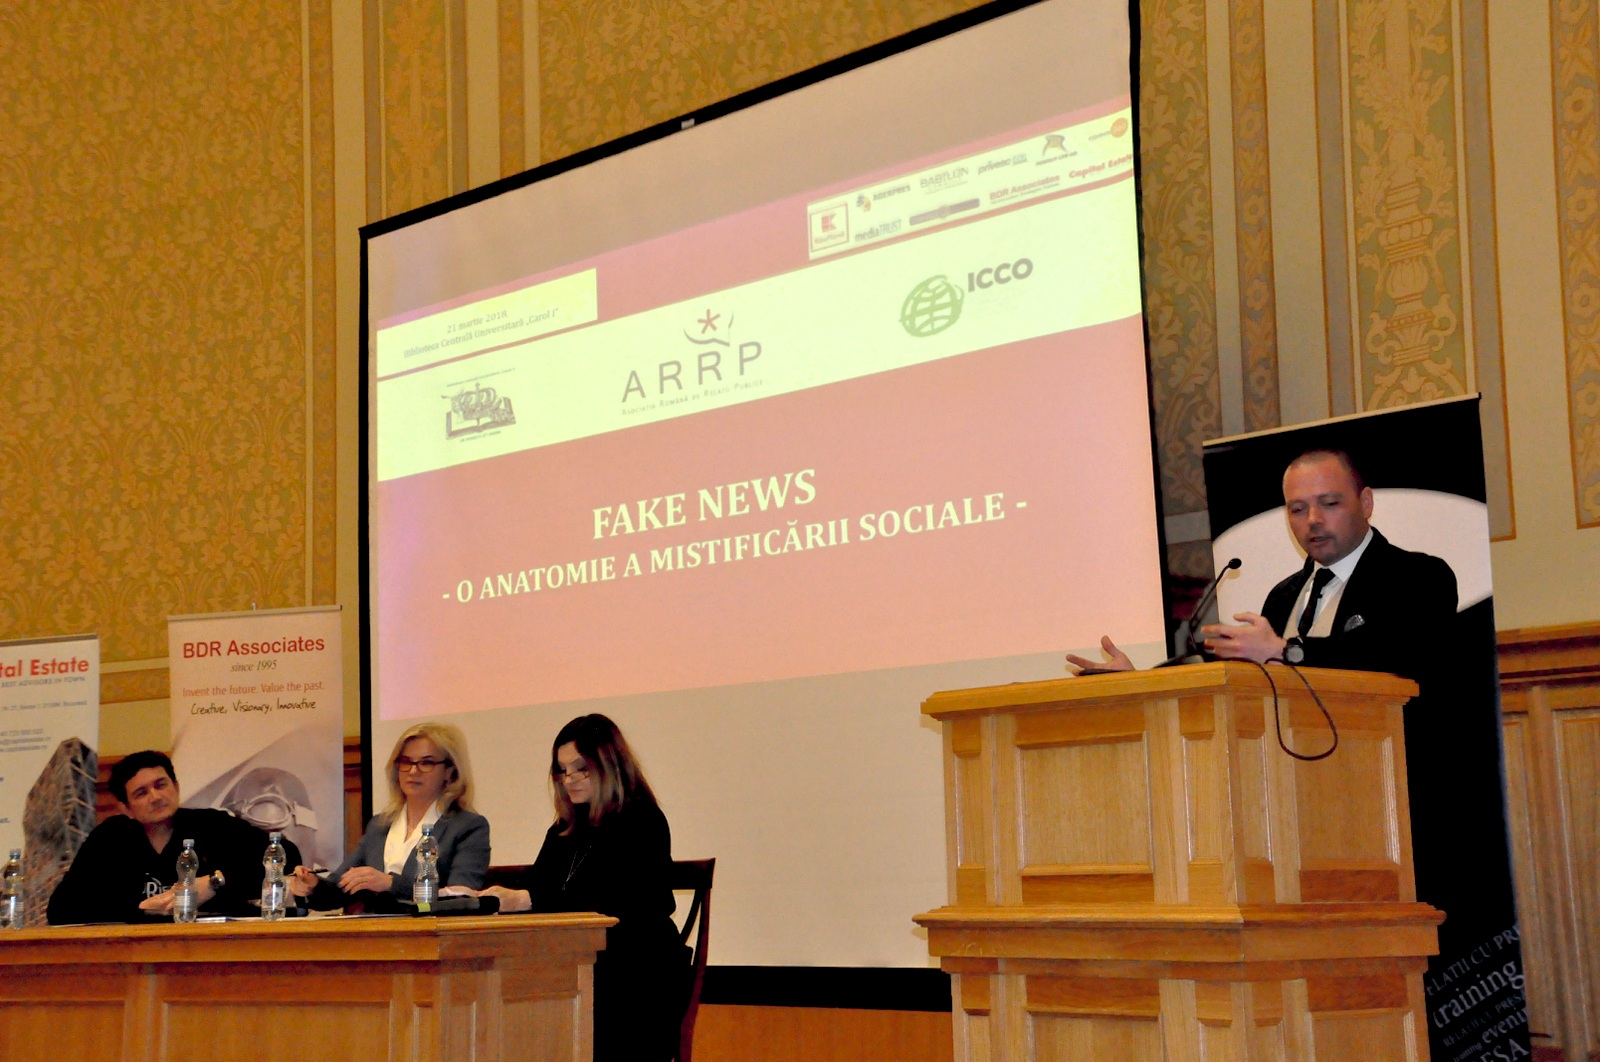 Mihai Voicu, ONV LAW partner, talking about fake news at the ARRP conference in March 2018